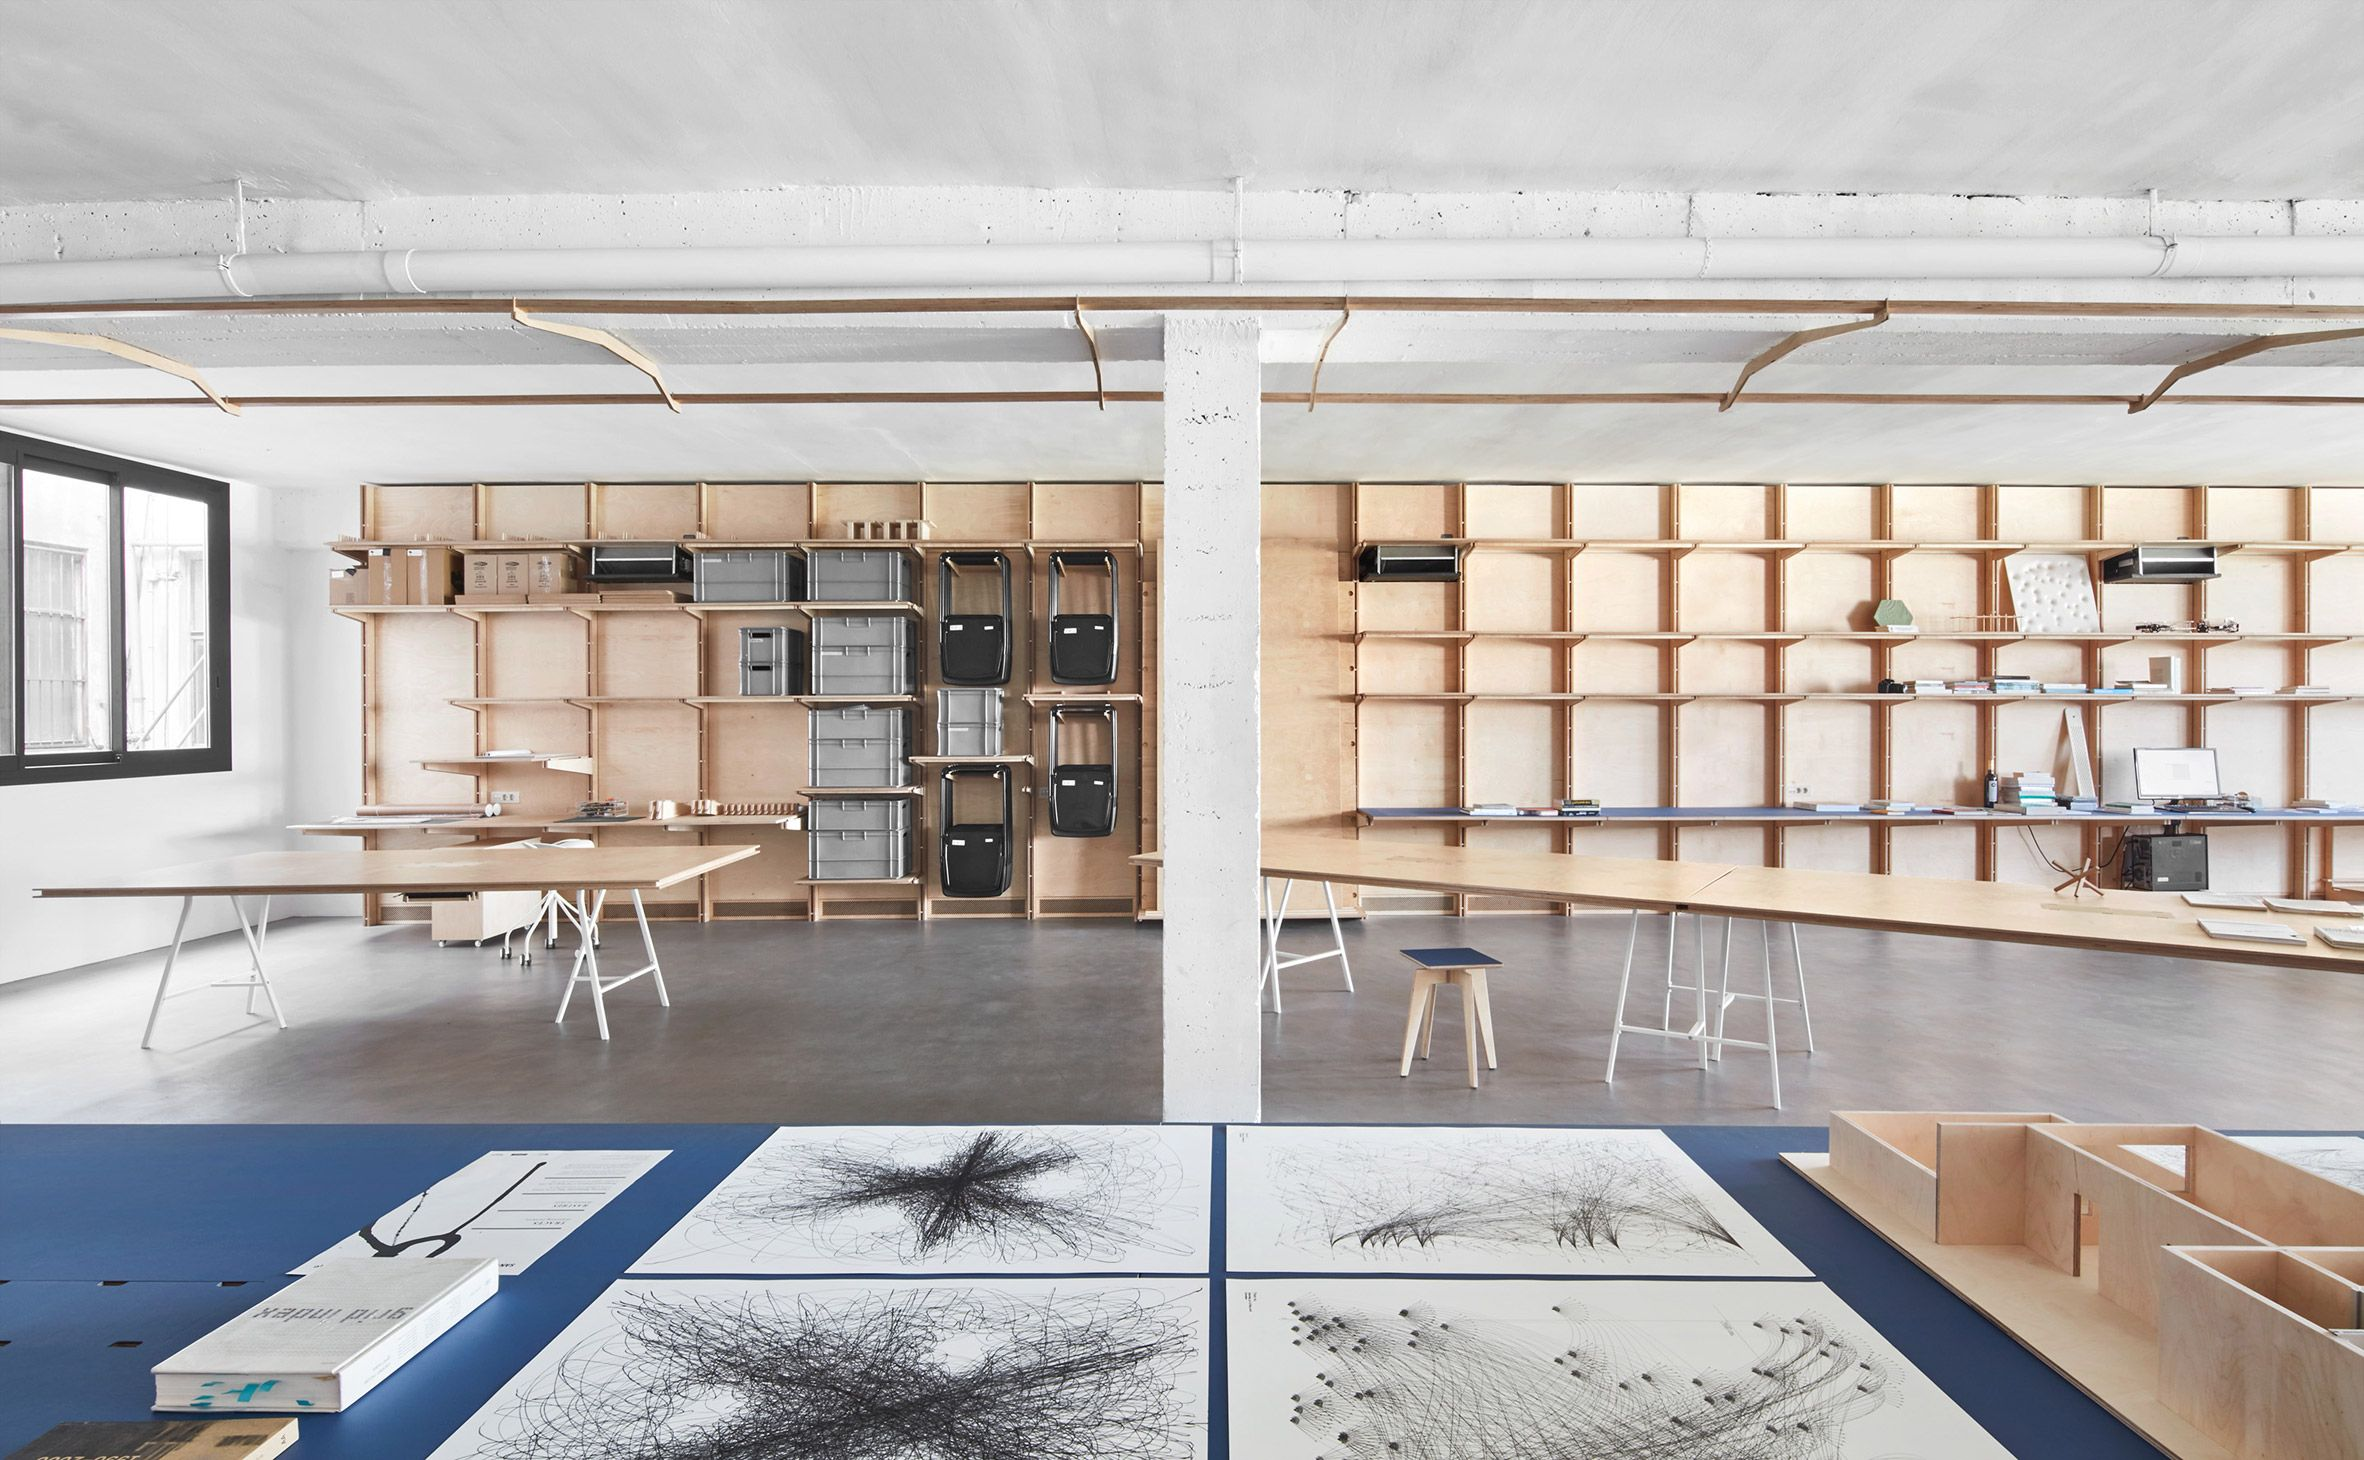 Barcelona Warehouse Transformed Into Flexible Co Working Space For  Architects And Designers. Two Milled Timber Multifunctional Walls Line The  Length Of The ...